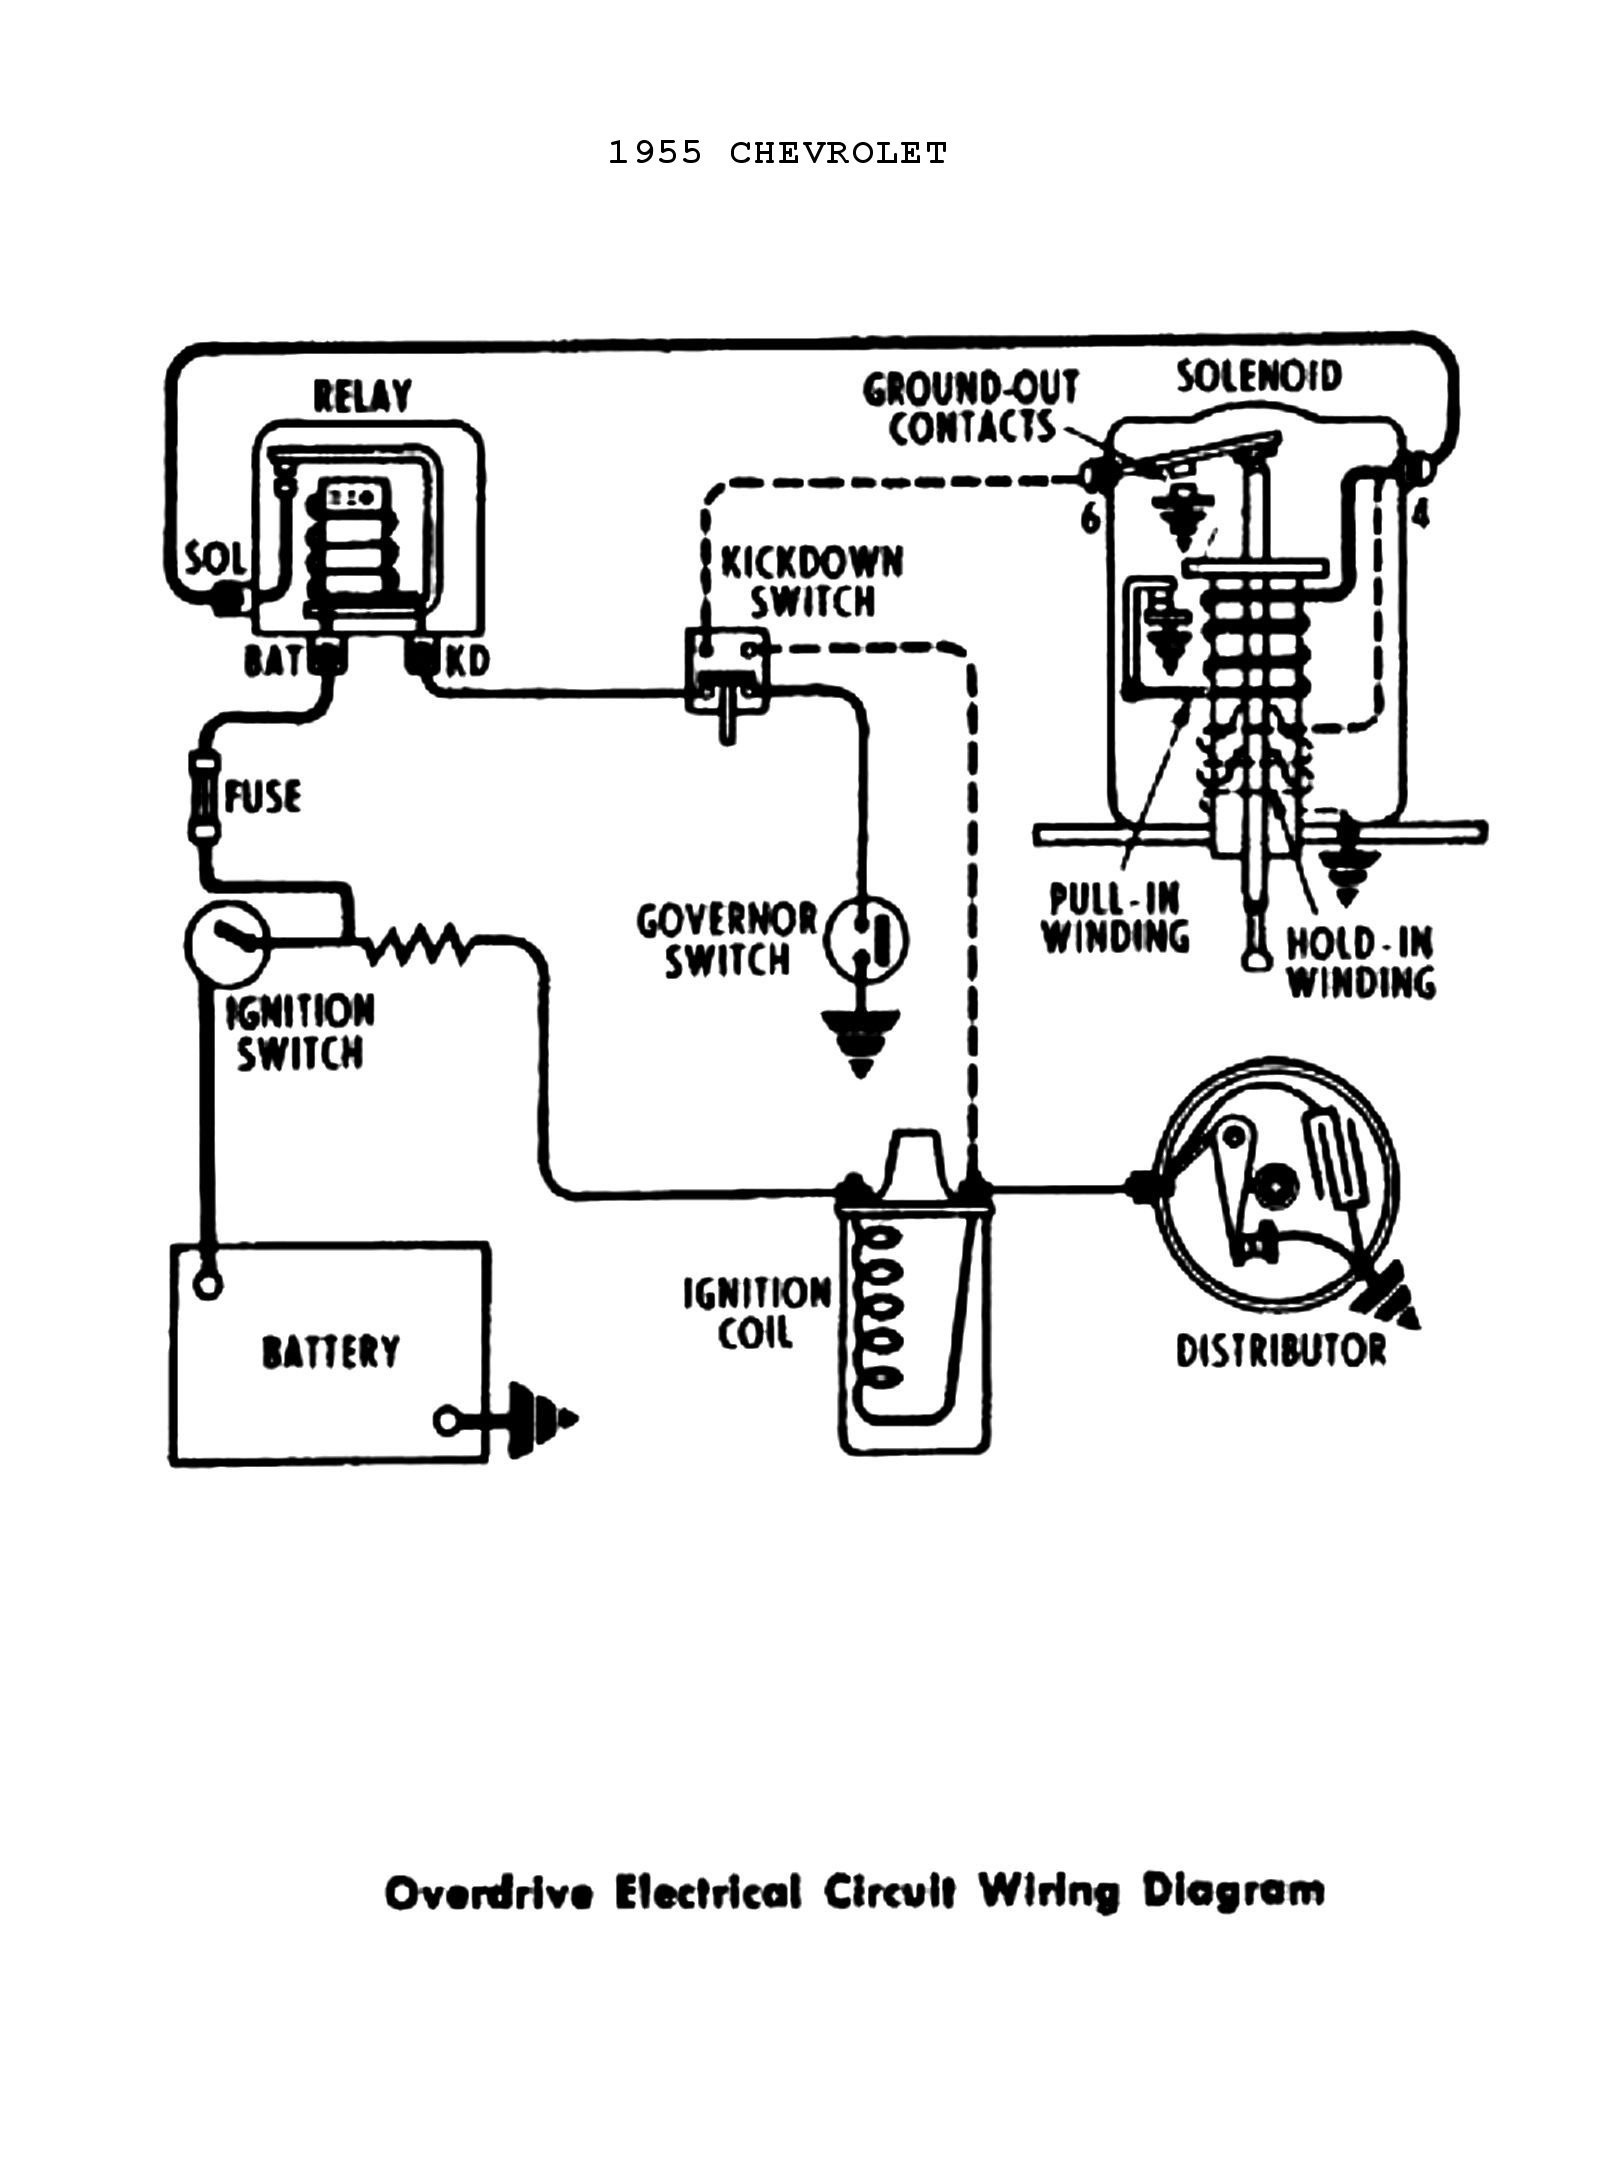 1985 Chevy Truck Wiring Harness Diagram from i1.wp.com